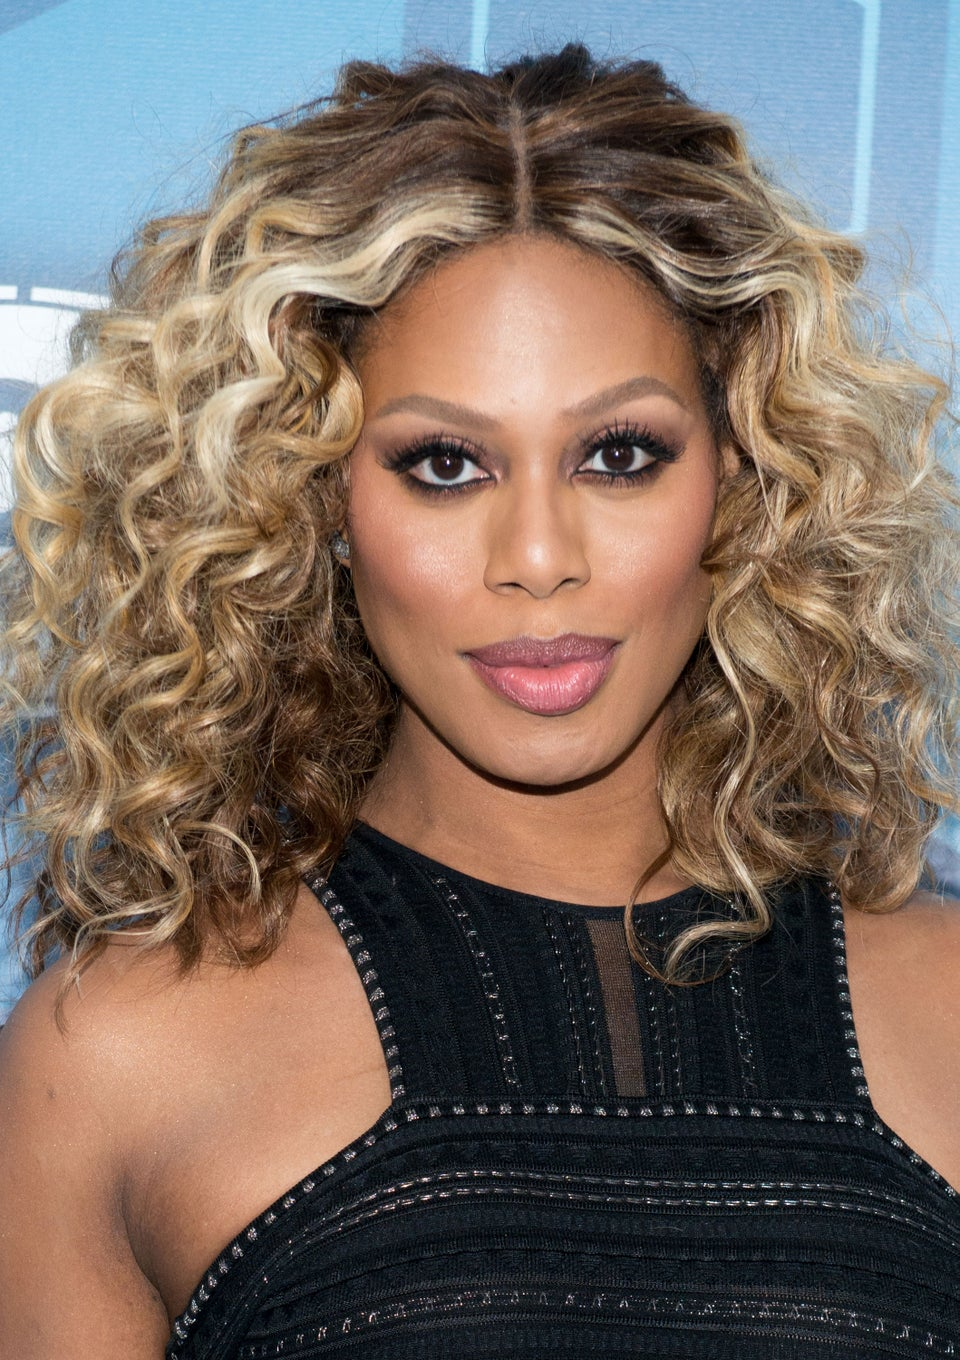 You Won't Want To Miss These New Fox Shows Starring Laverne Cox, Damon Wayans & More